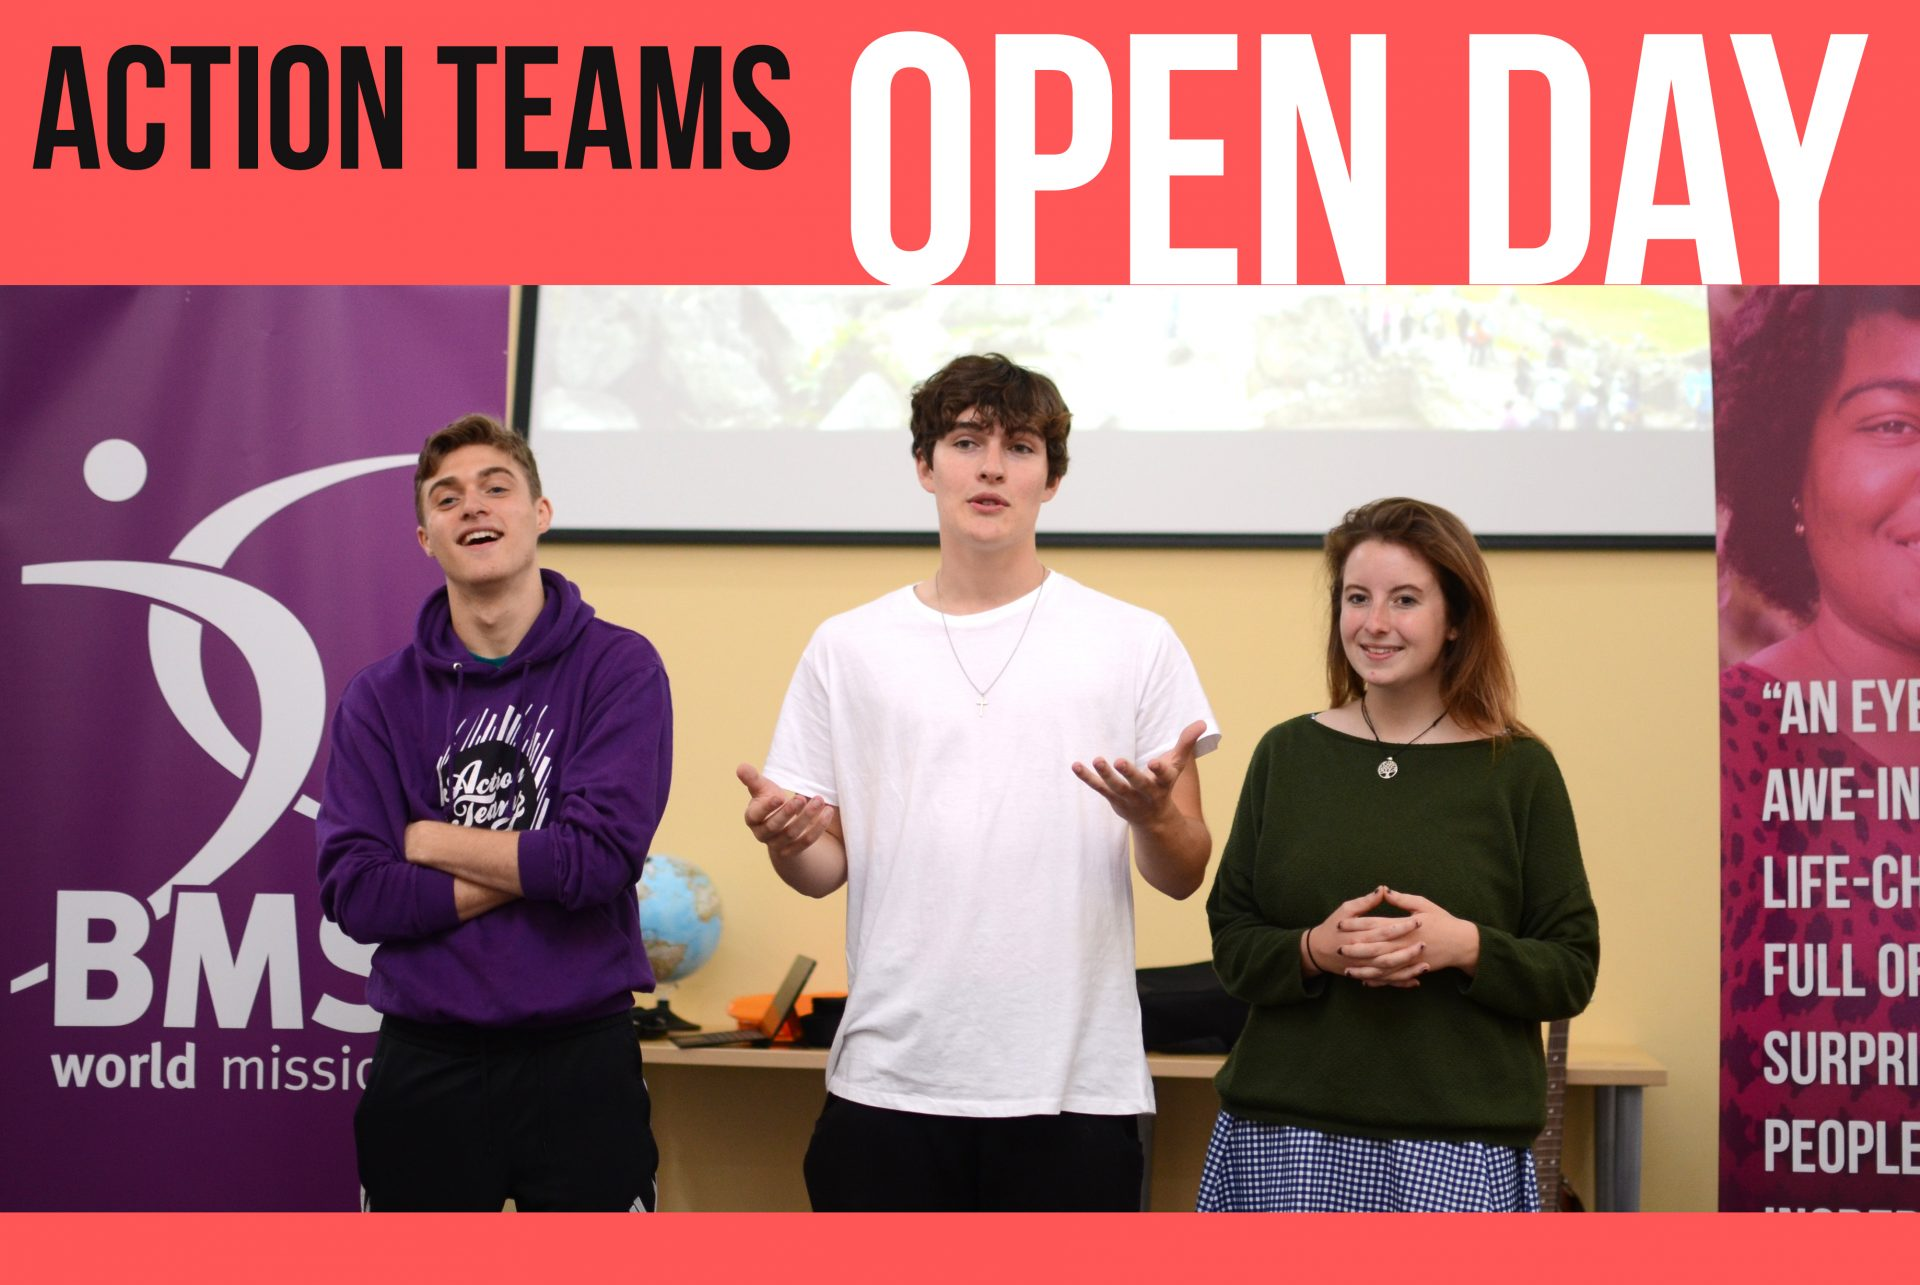 Open Day - Advert_0003_AT - Open Day - Image 4